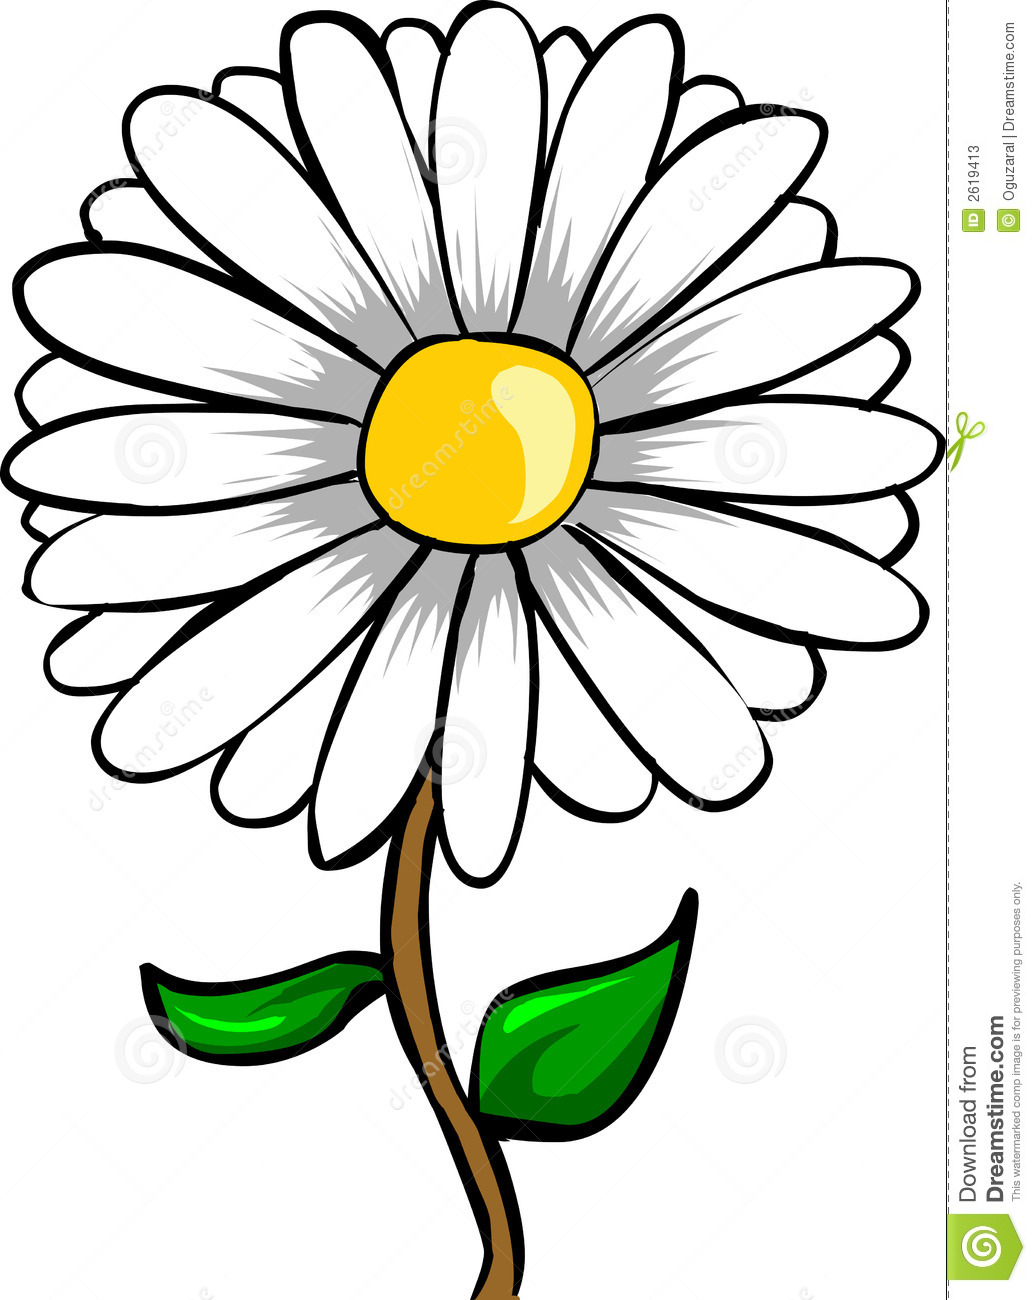 gerbera daisy clipart at getdrawings com free for personal use rh getdrawings com clip art daisy outline clip art daisy smiley face